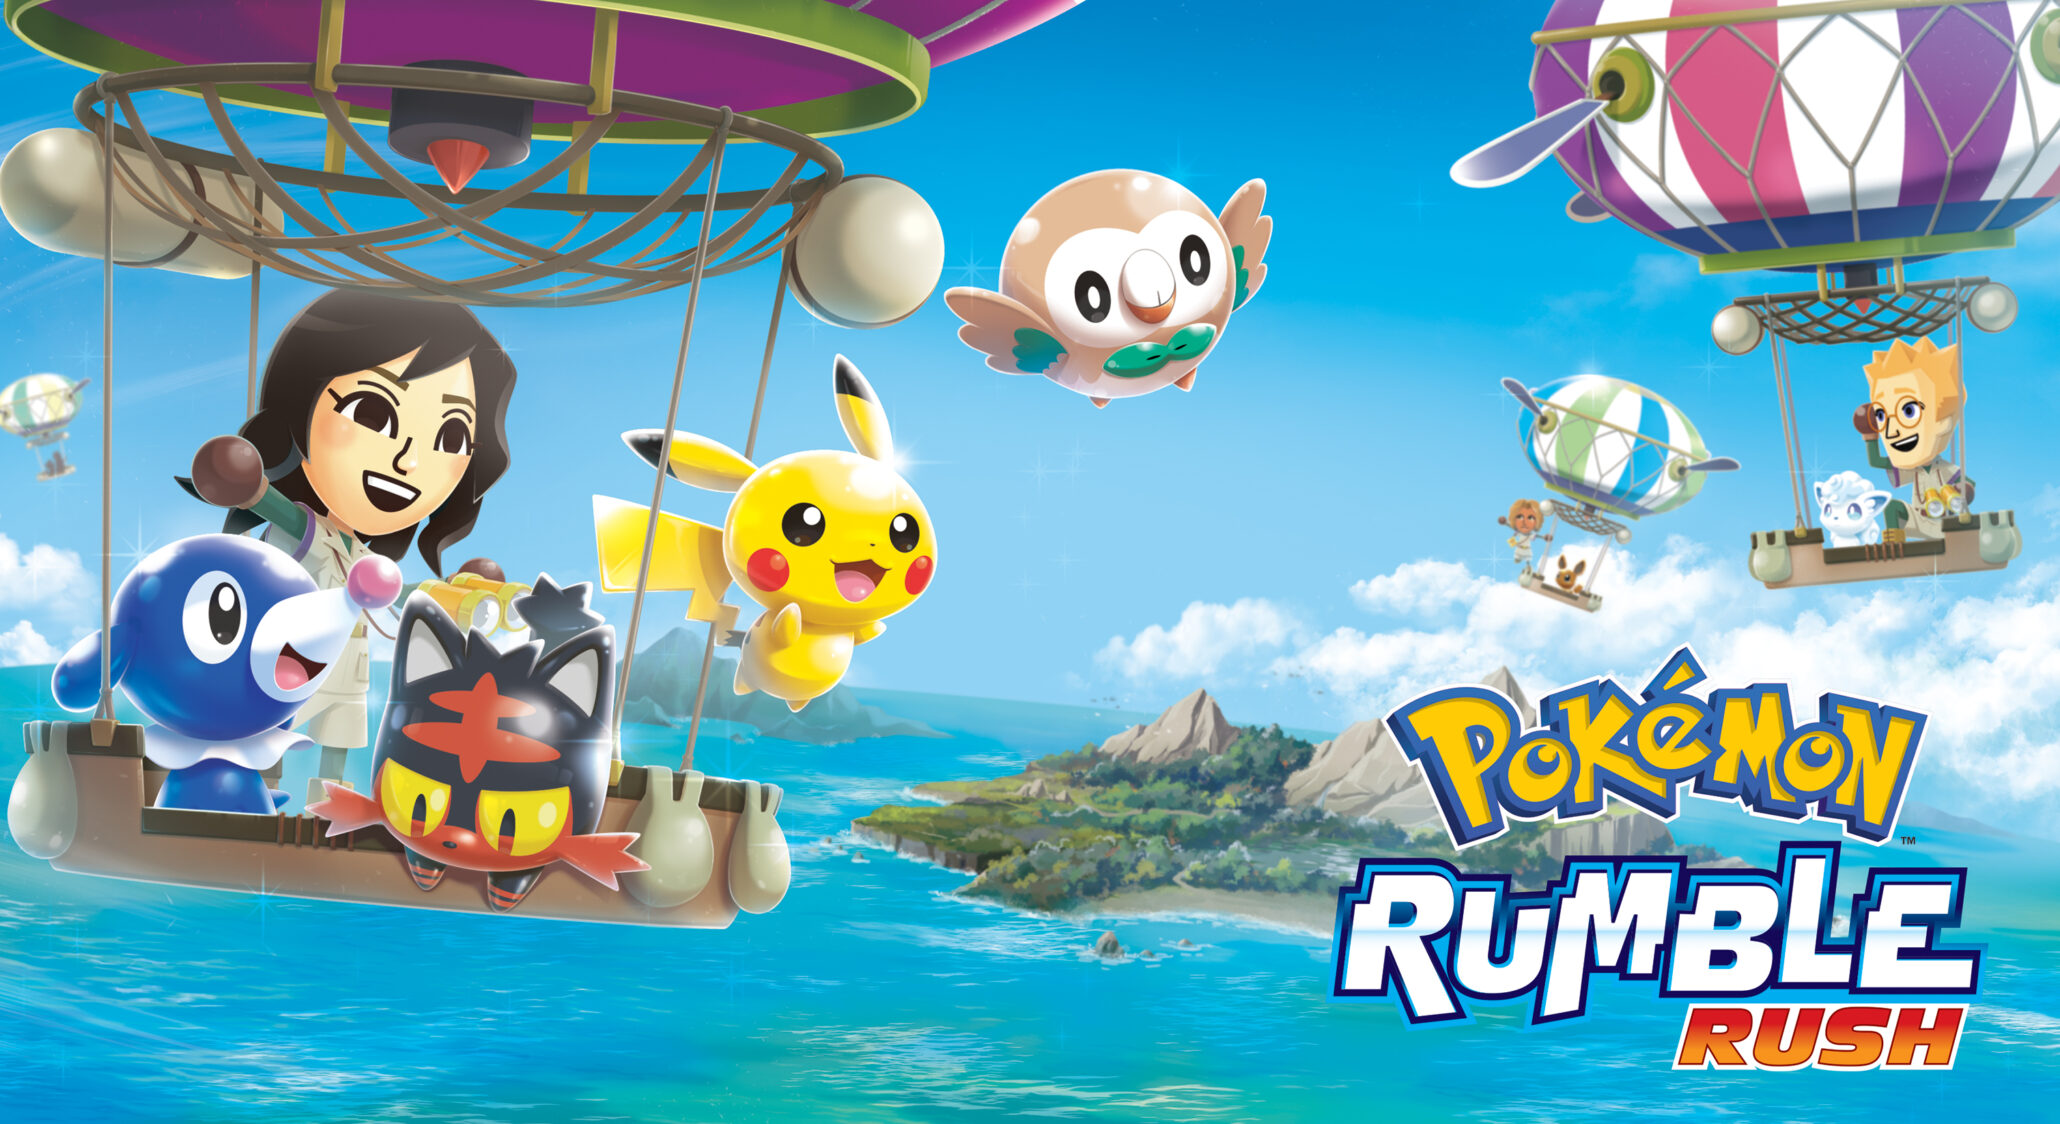 Pokémon Rumble Rush Is Now Available on Android